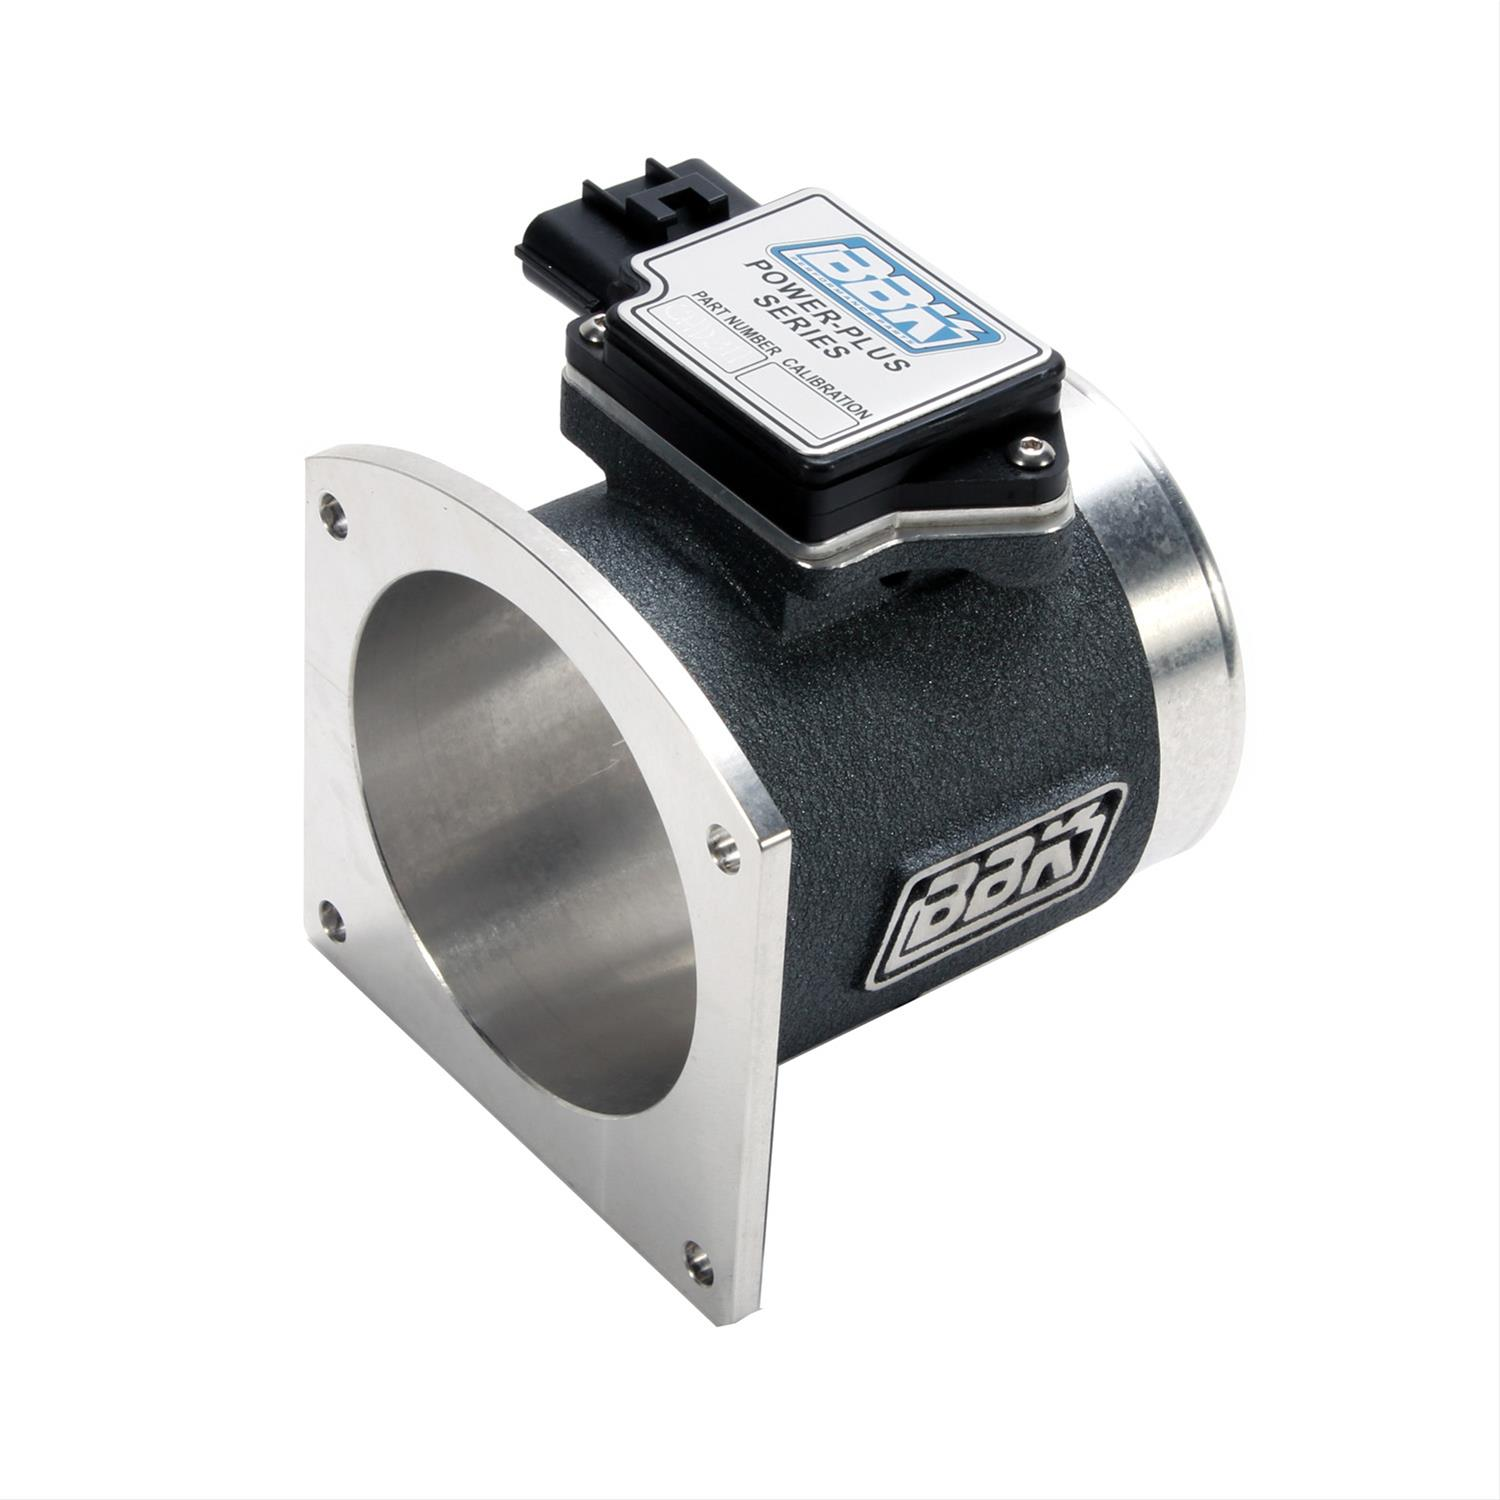 BBK 8007 76mm 19 lbs Cold Air Calibration Mass Air Meter for Ford Mustang GT//S 5.0L